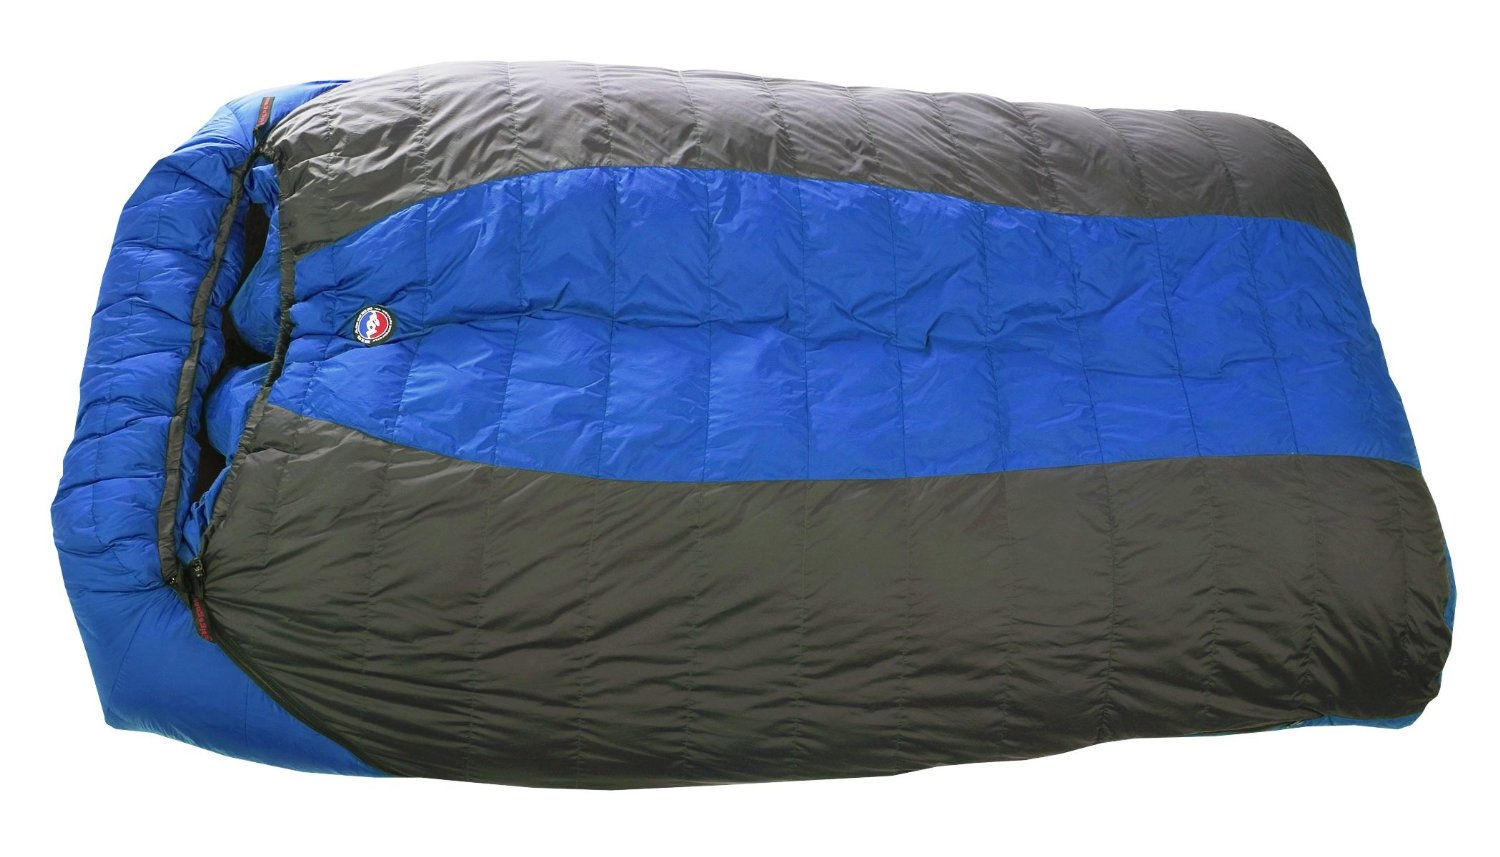 A Double Sleeping Bag: Room For Cuddling!